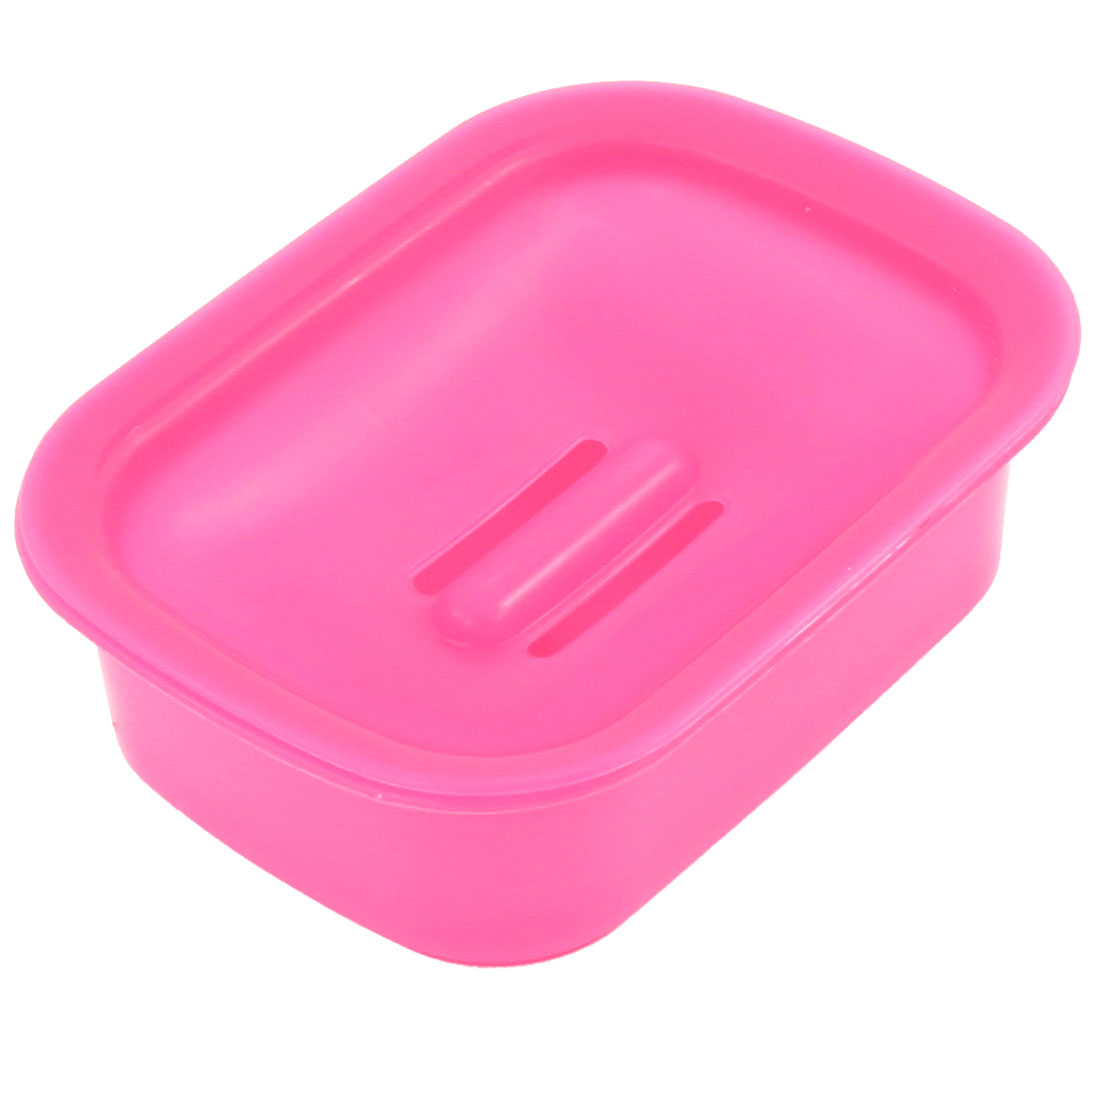 Home Portable Rectangle Shaped Solid Fuchsia Plastic Soap Holder Vessel Dish